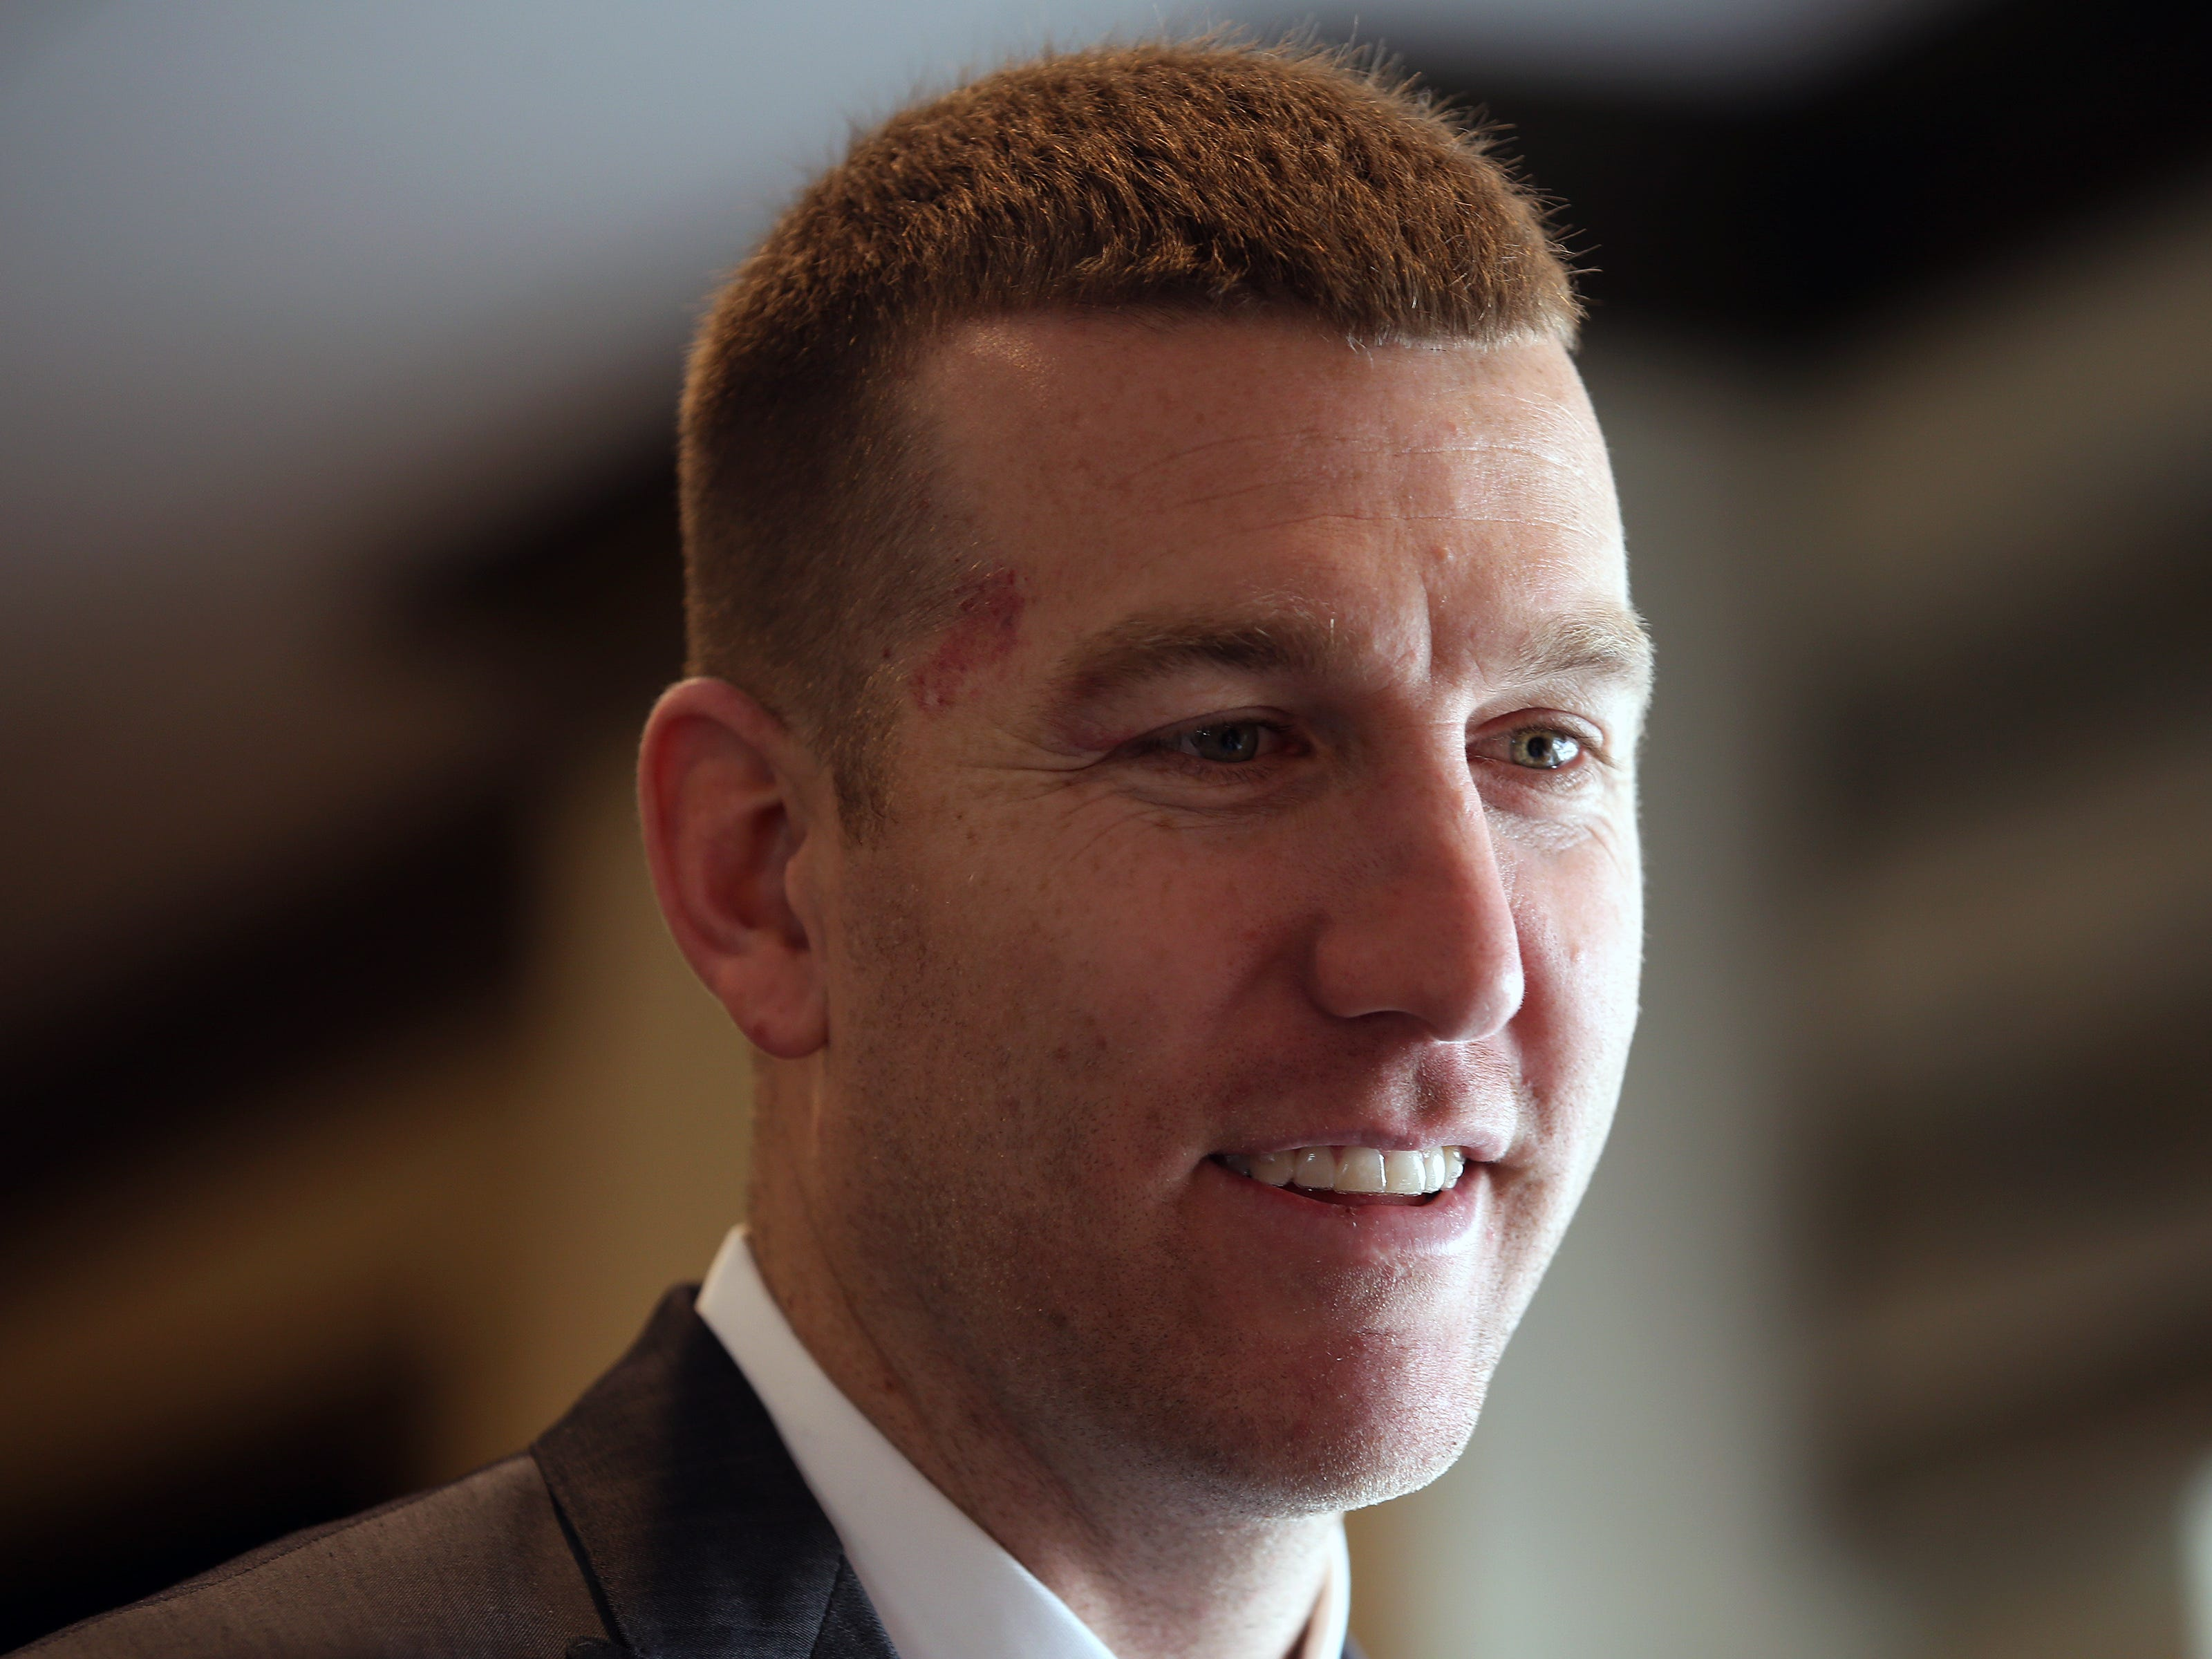 Todd Frazier of the New York Mets, and a Toms River native, speaks to the Asbury Park Press before being inducted into the NJSIAA Hall of Fame at the Westin Princeton at Forrestal Village in Princeton, NJ Monday, December 3, 2018.